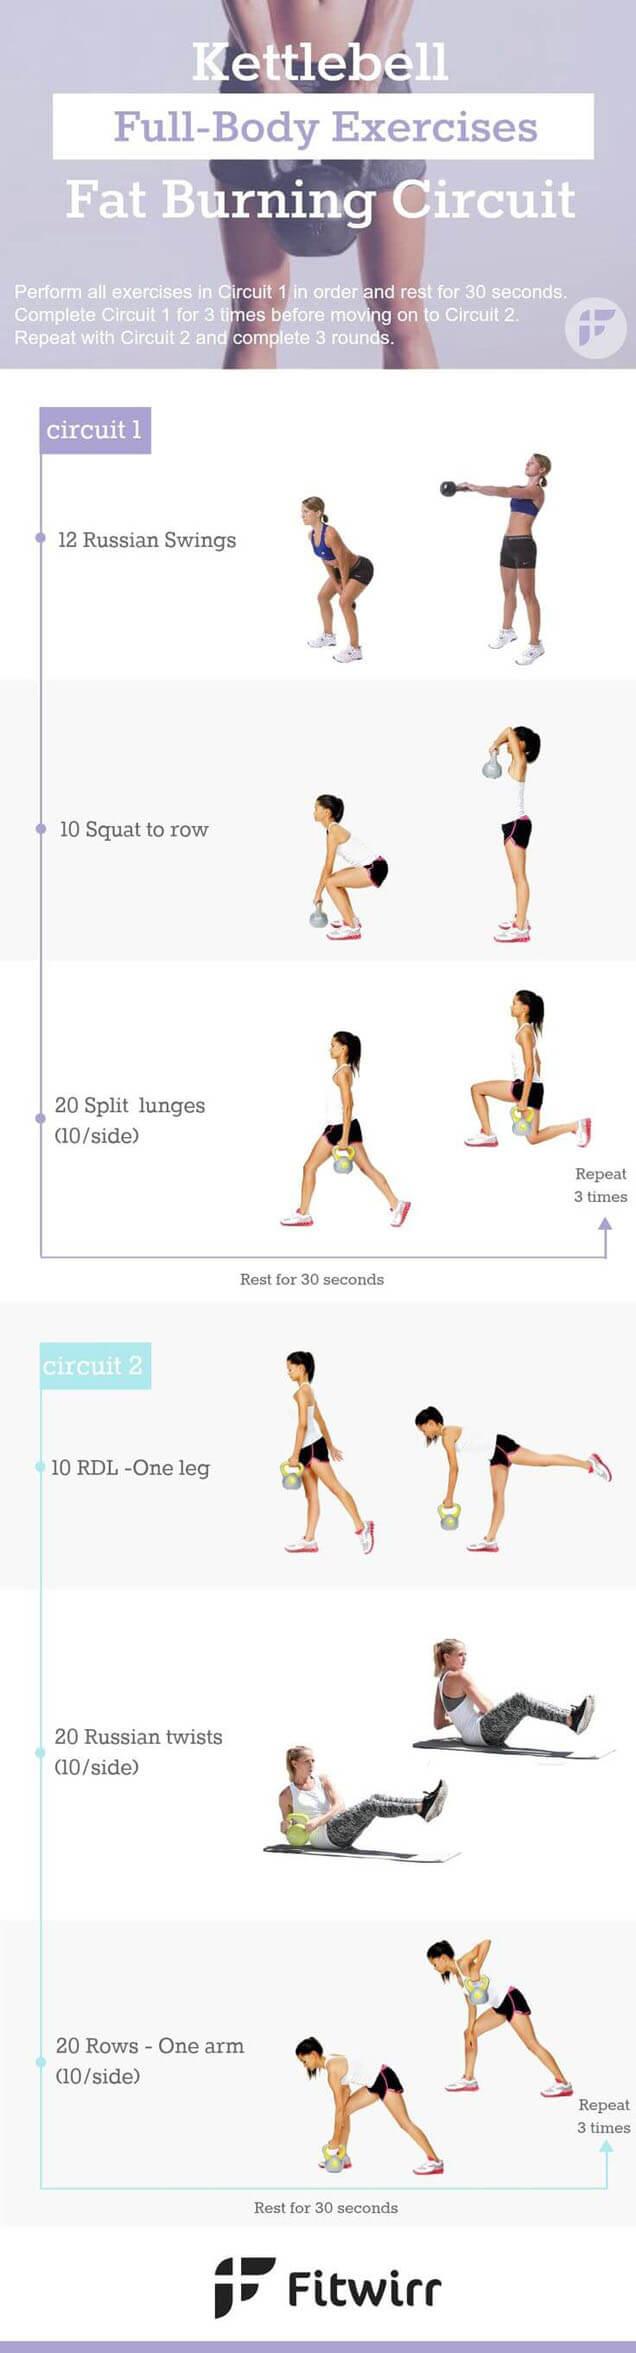 kettlebell-fat-burning-circuit